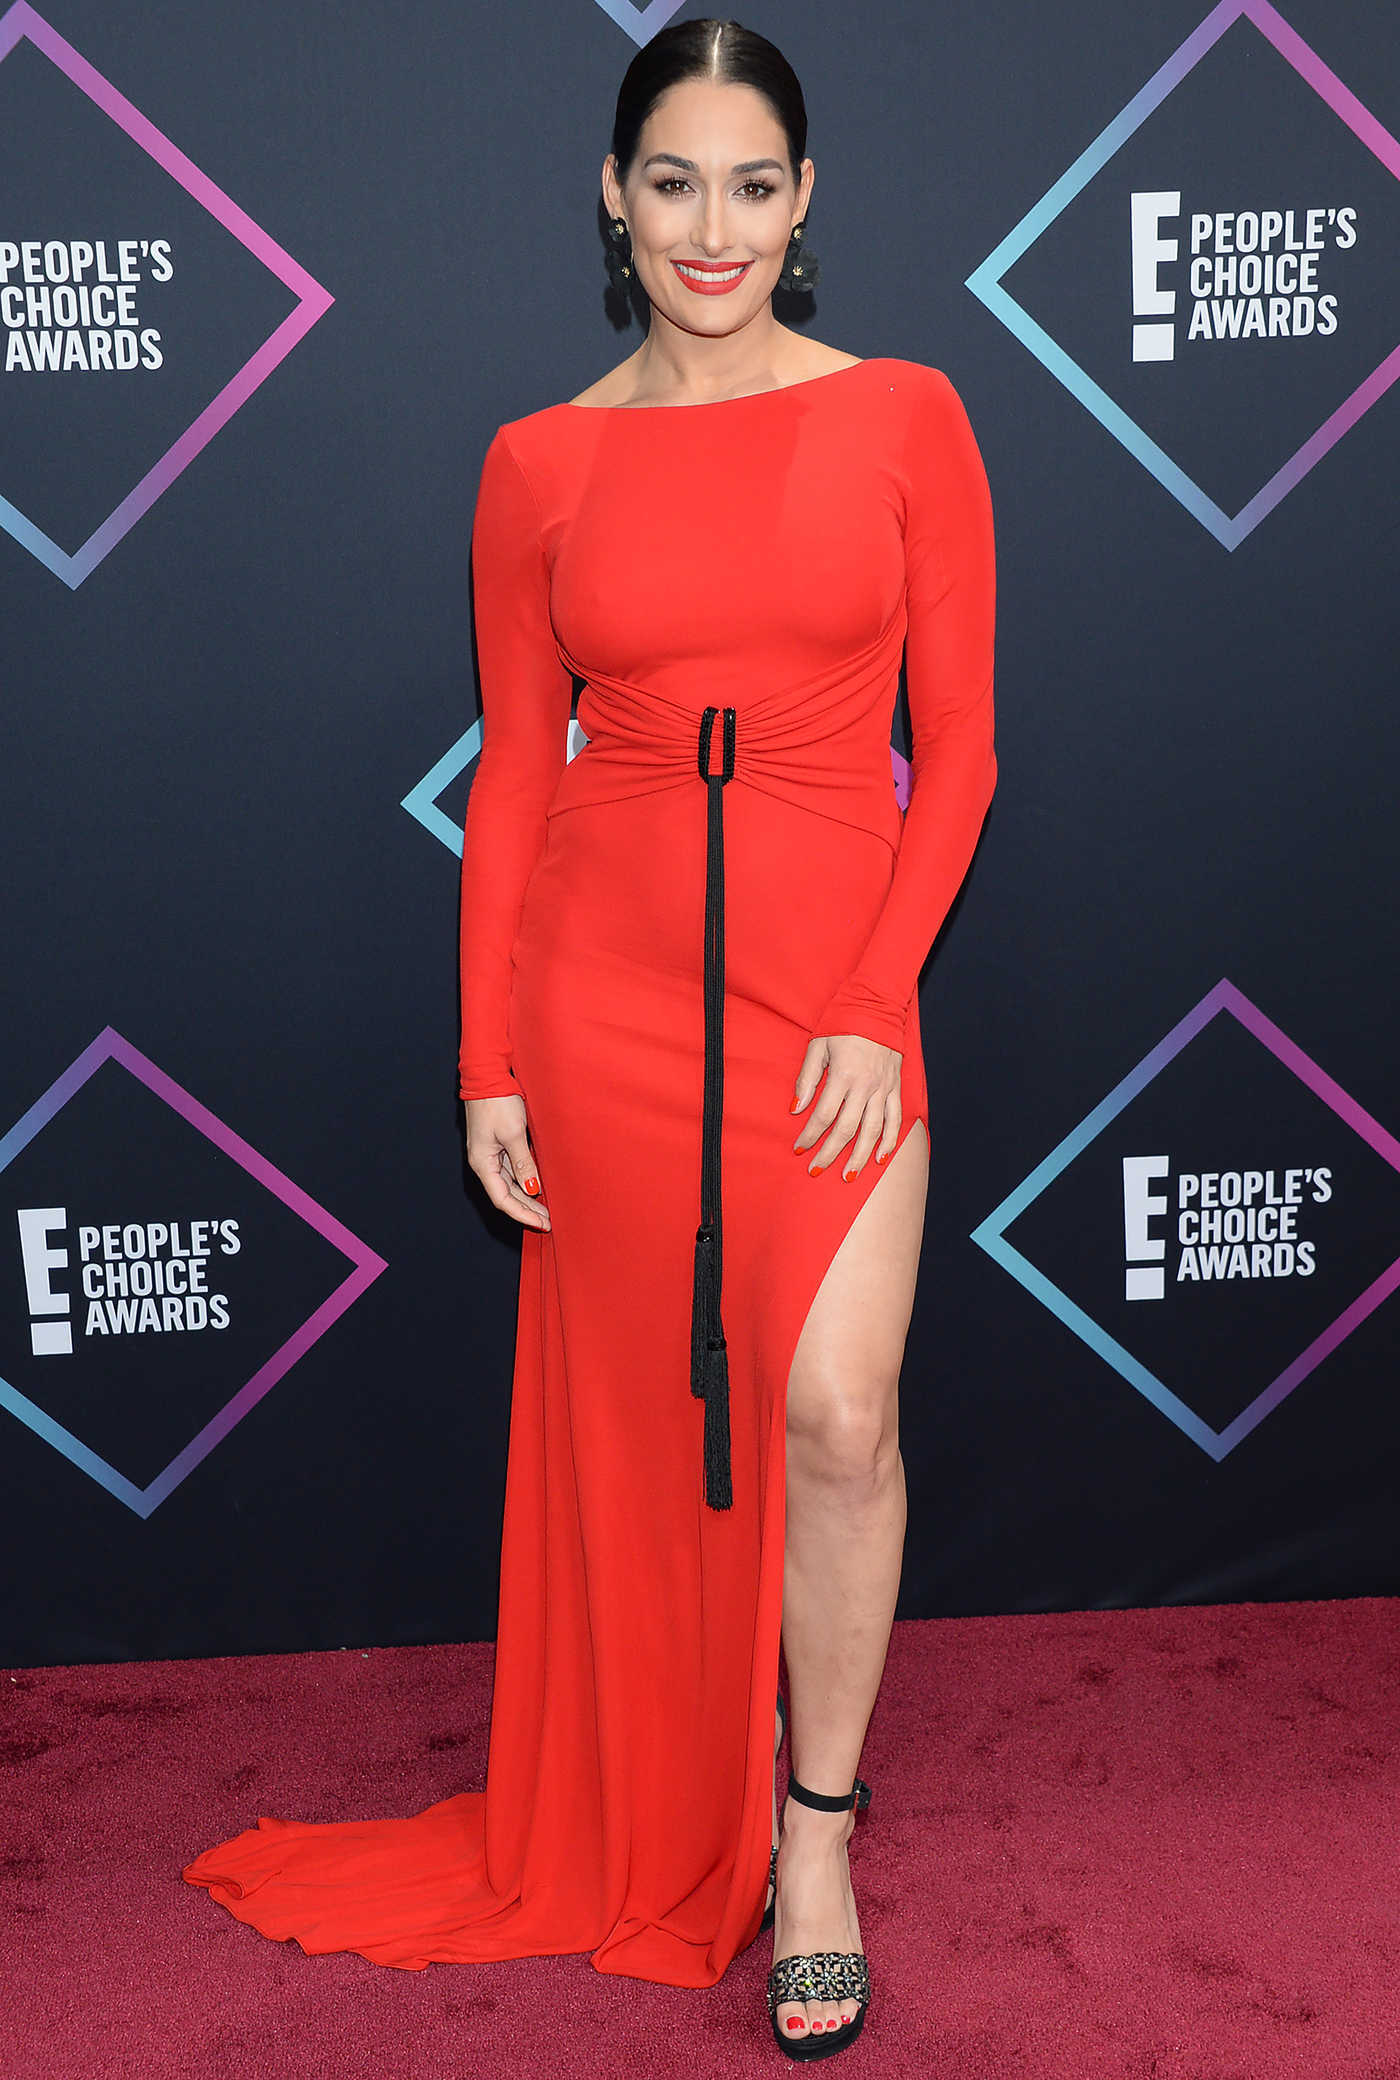 Nikki Bella Attends 2018 People's Choice Awards in Santa Monica 11/11/2018